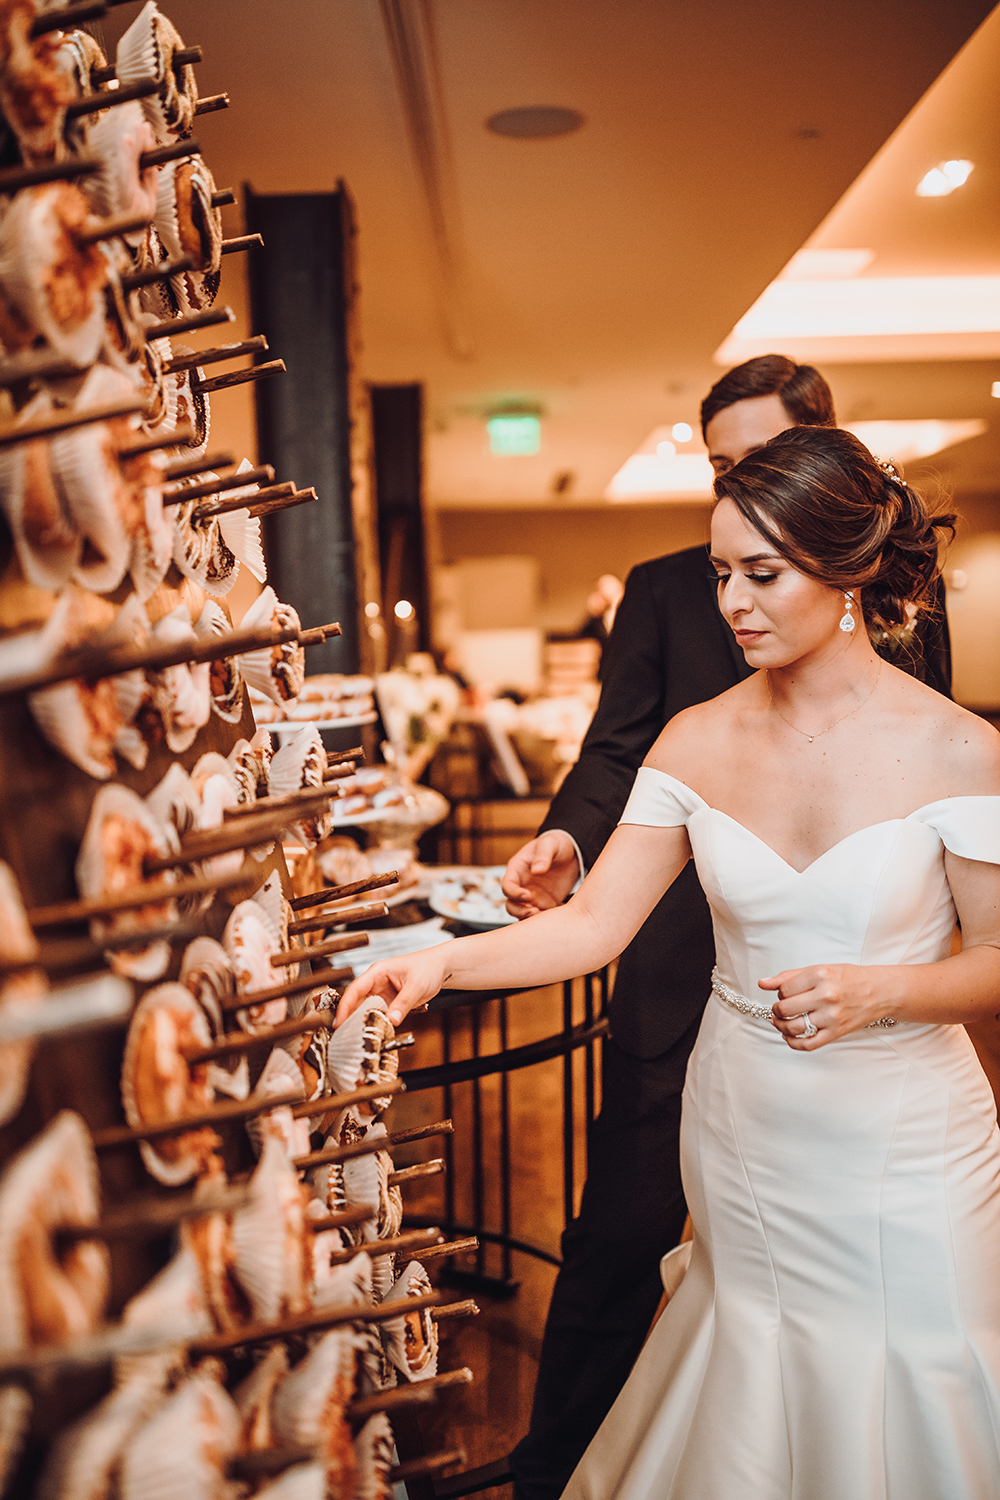 donut wall - wedding food trend